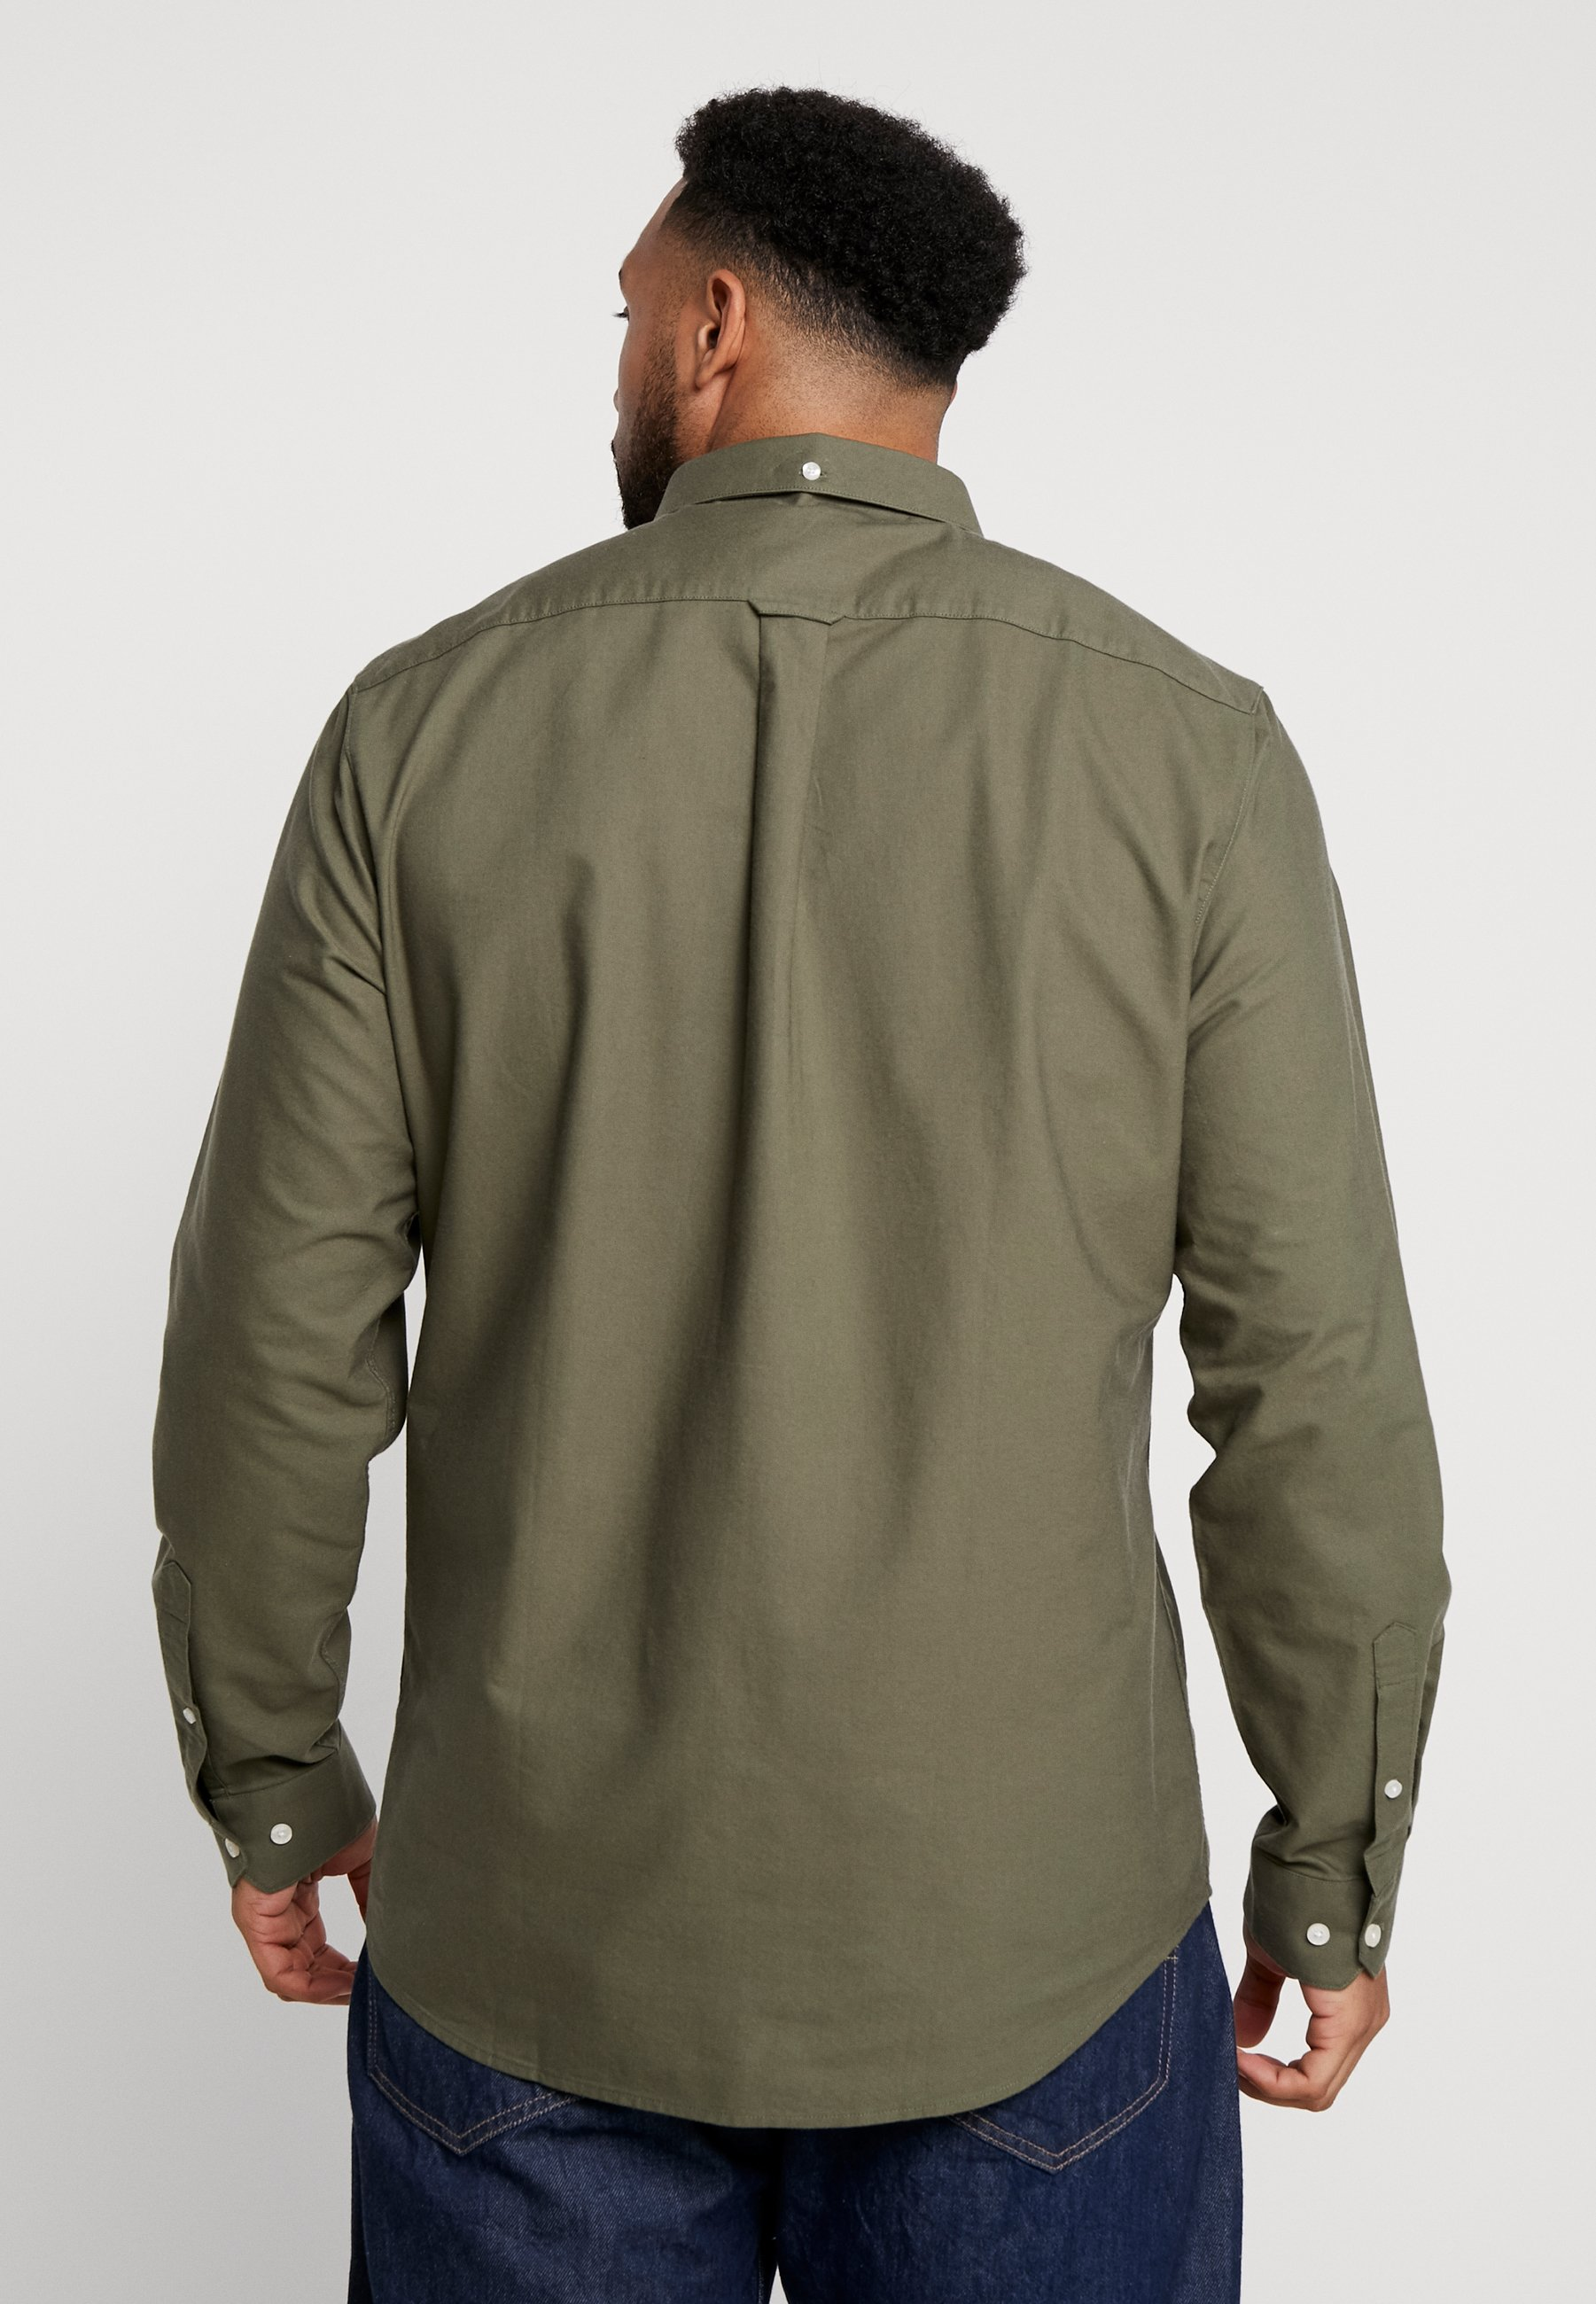 Brewer Big Military Farah Green And Tall SlimChemise cAjLq5RS34